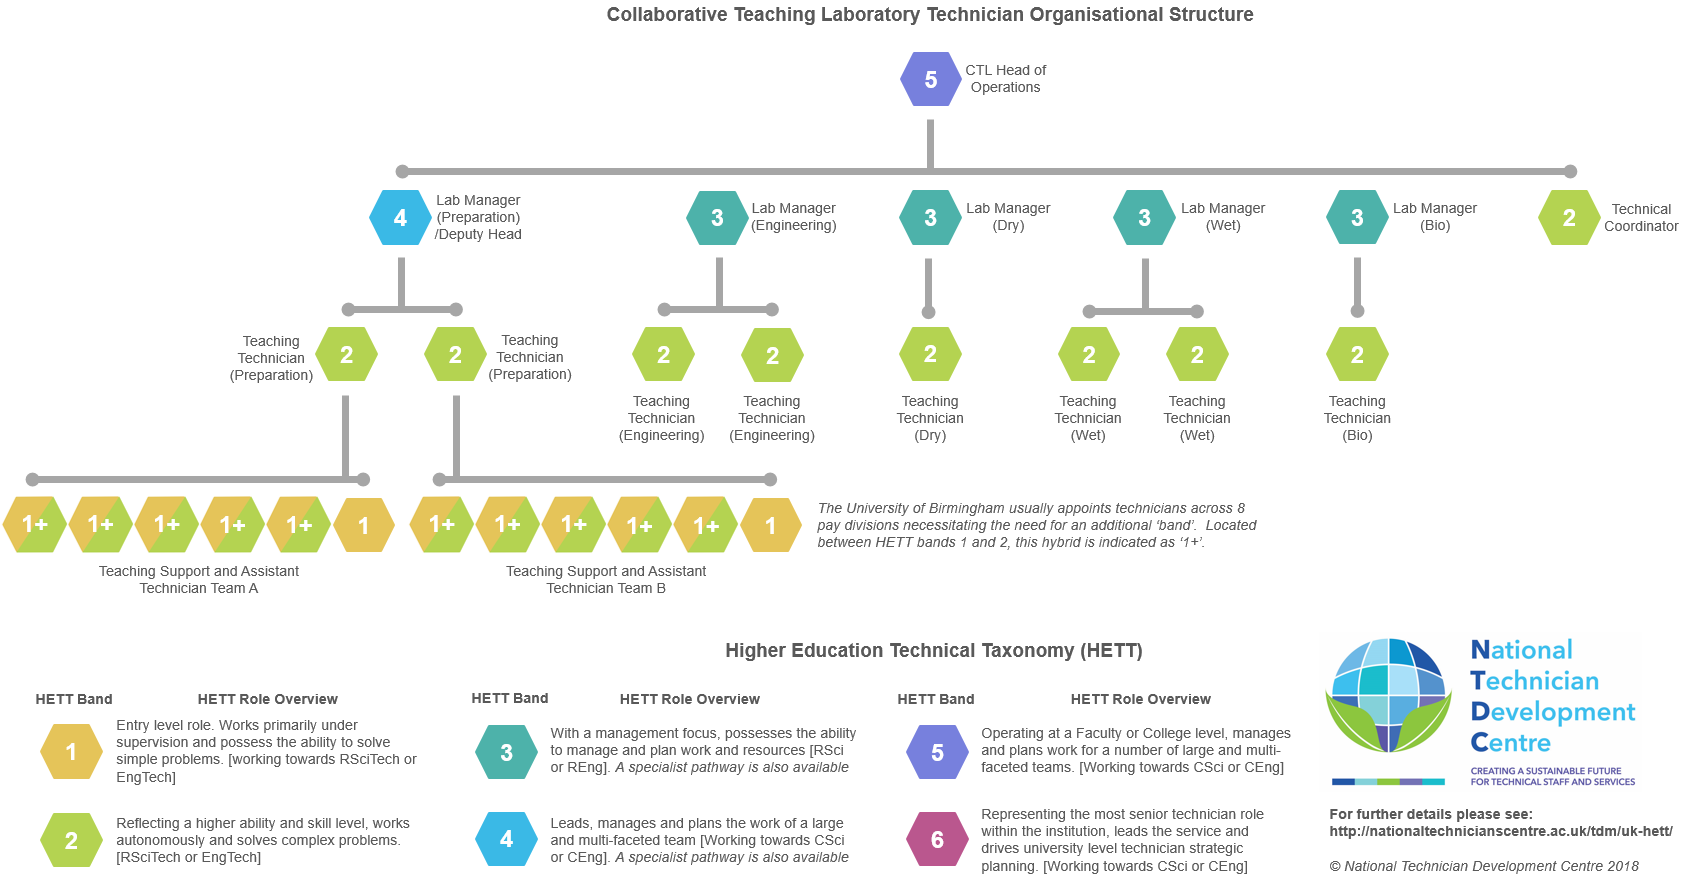 CTL organisational structure